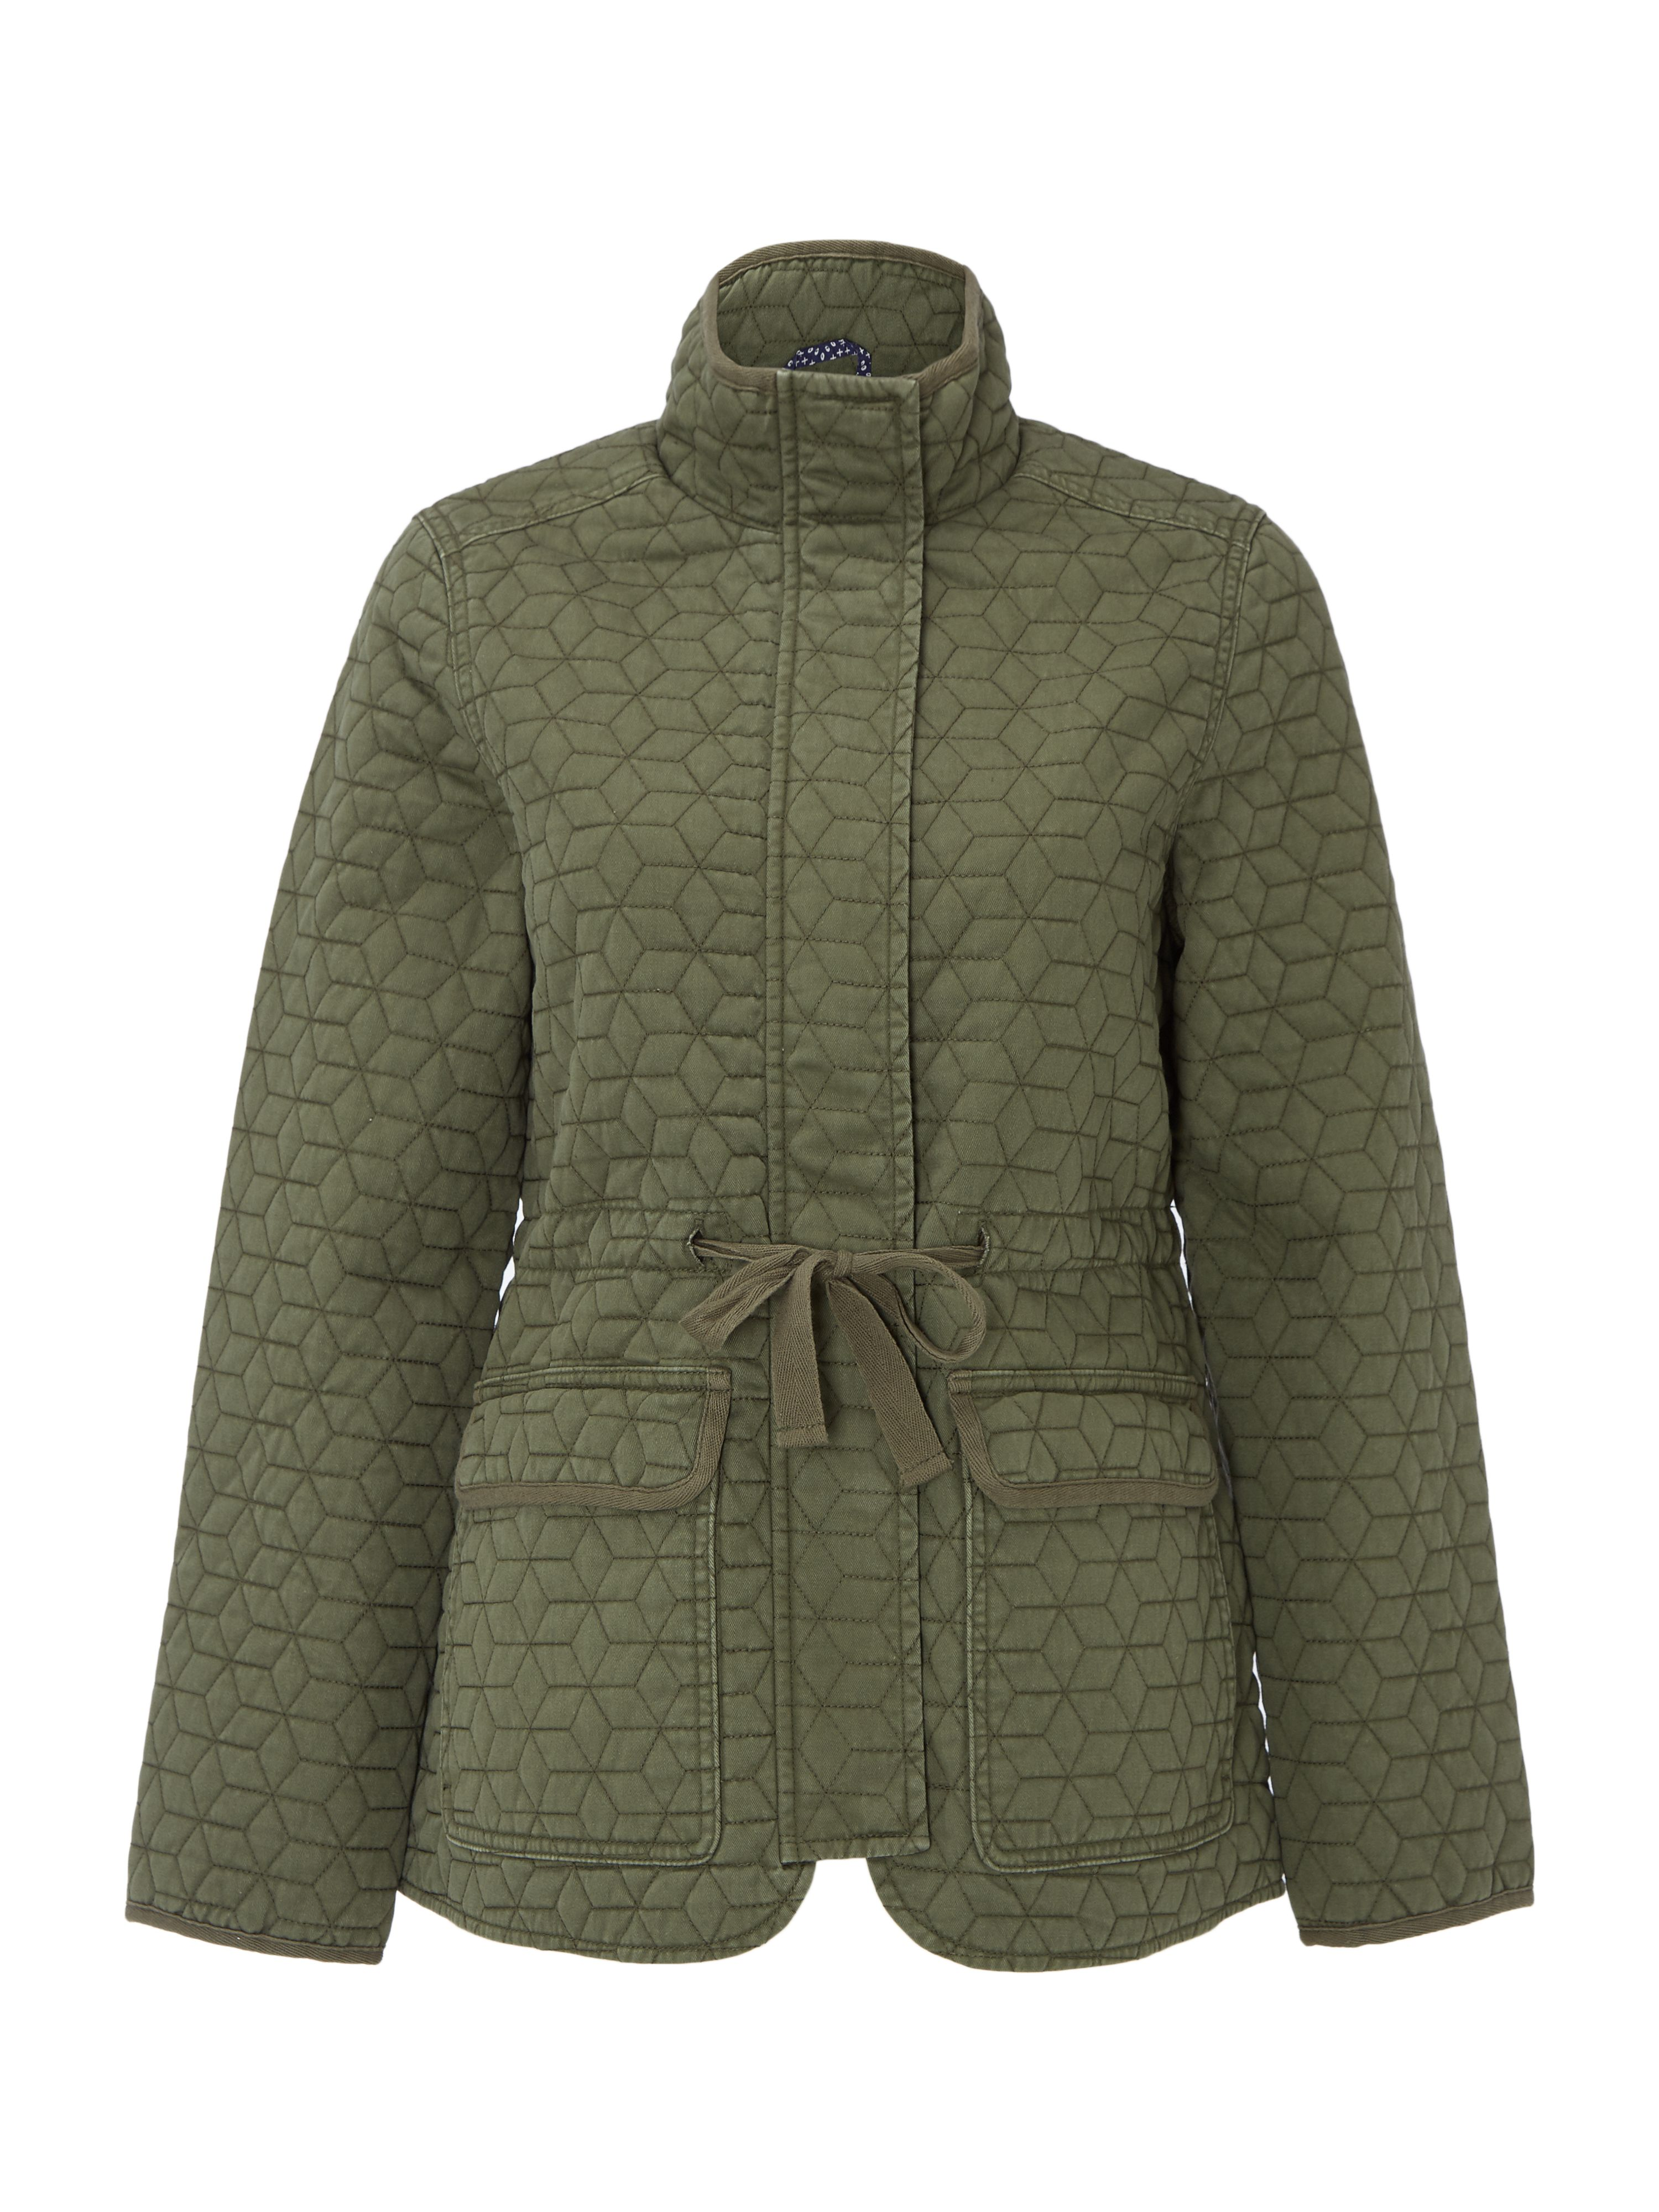 White Stuff Indus Quilted Jacket, Khaki